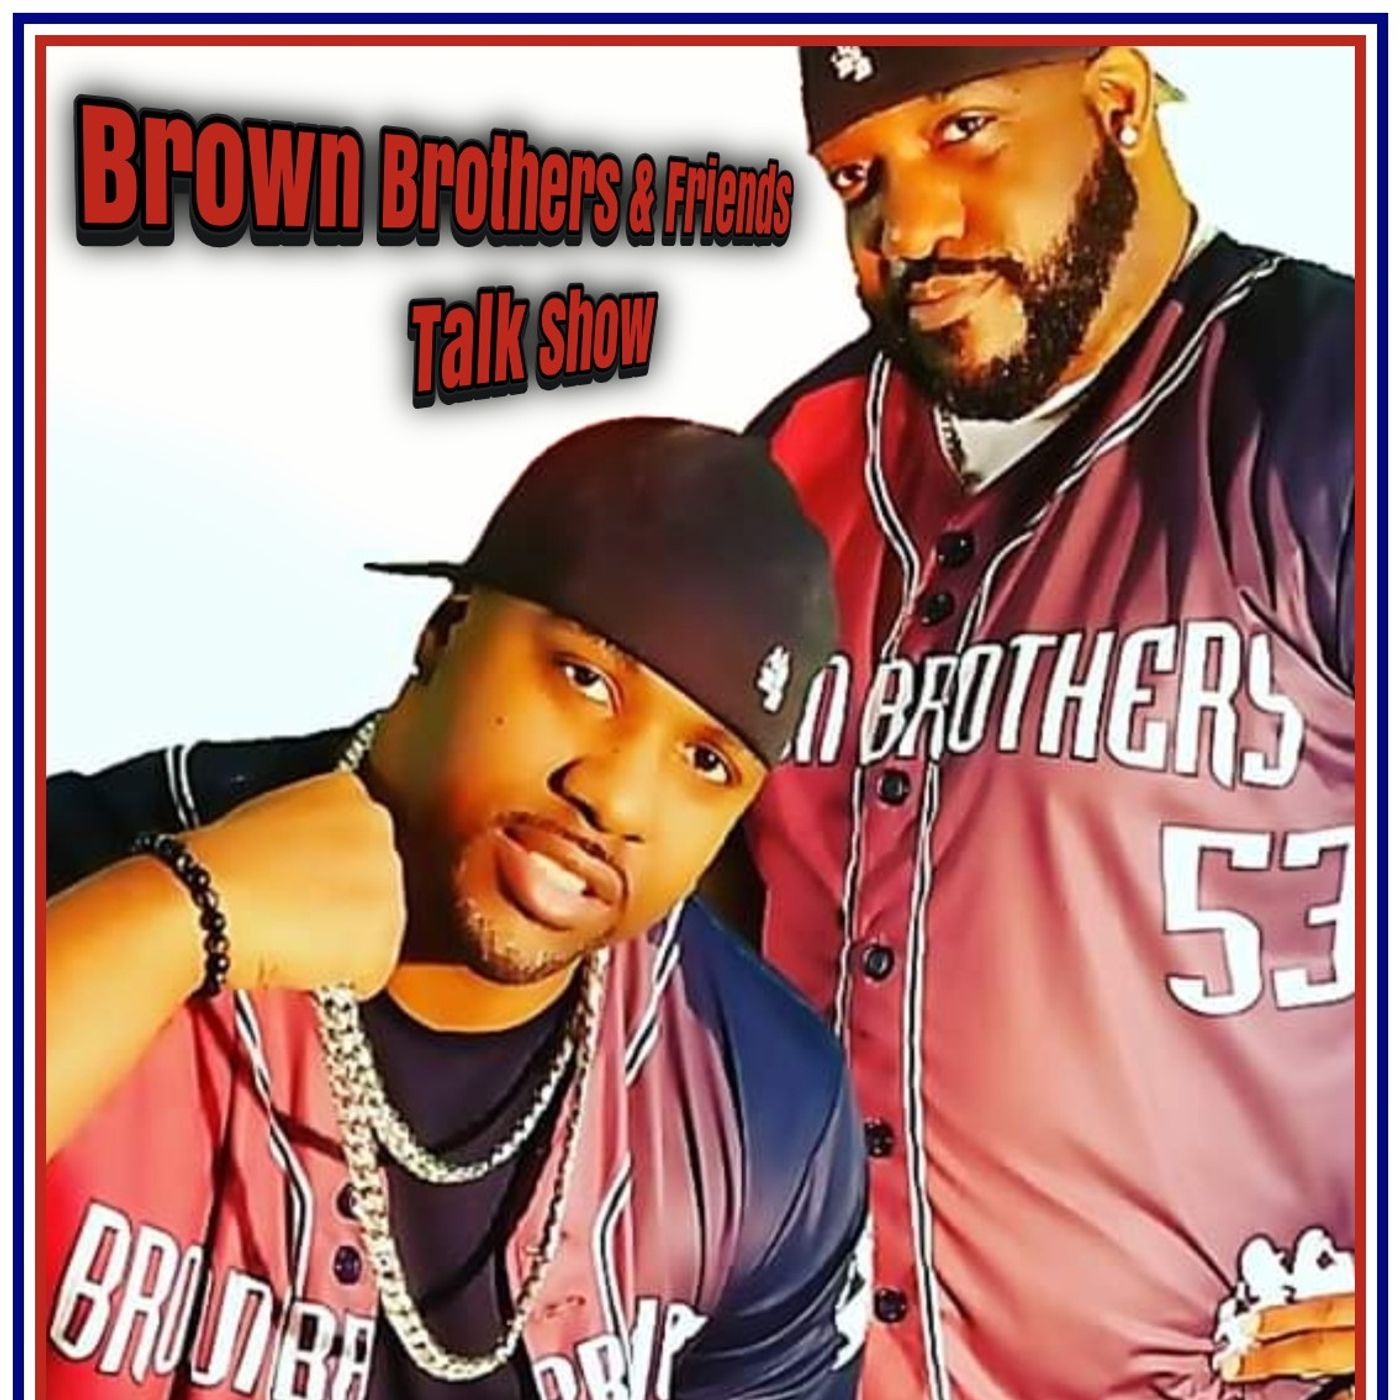 Brown Brothers and Friends Talk Show